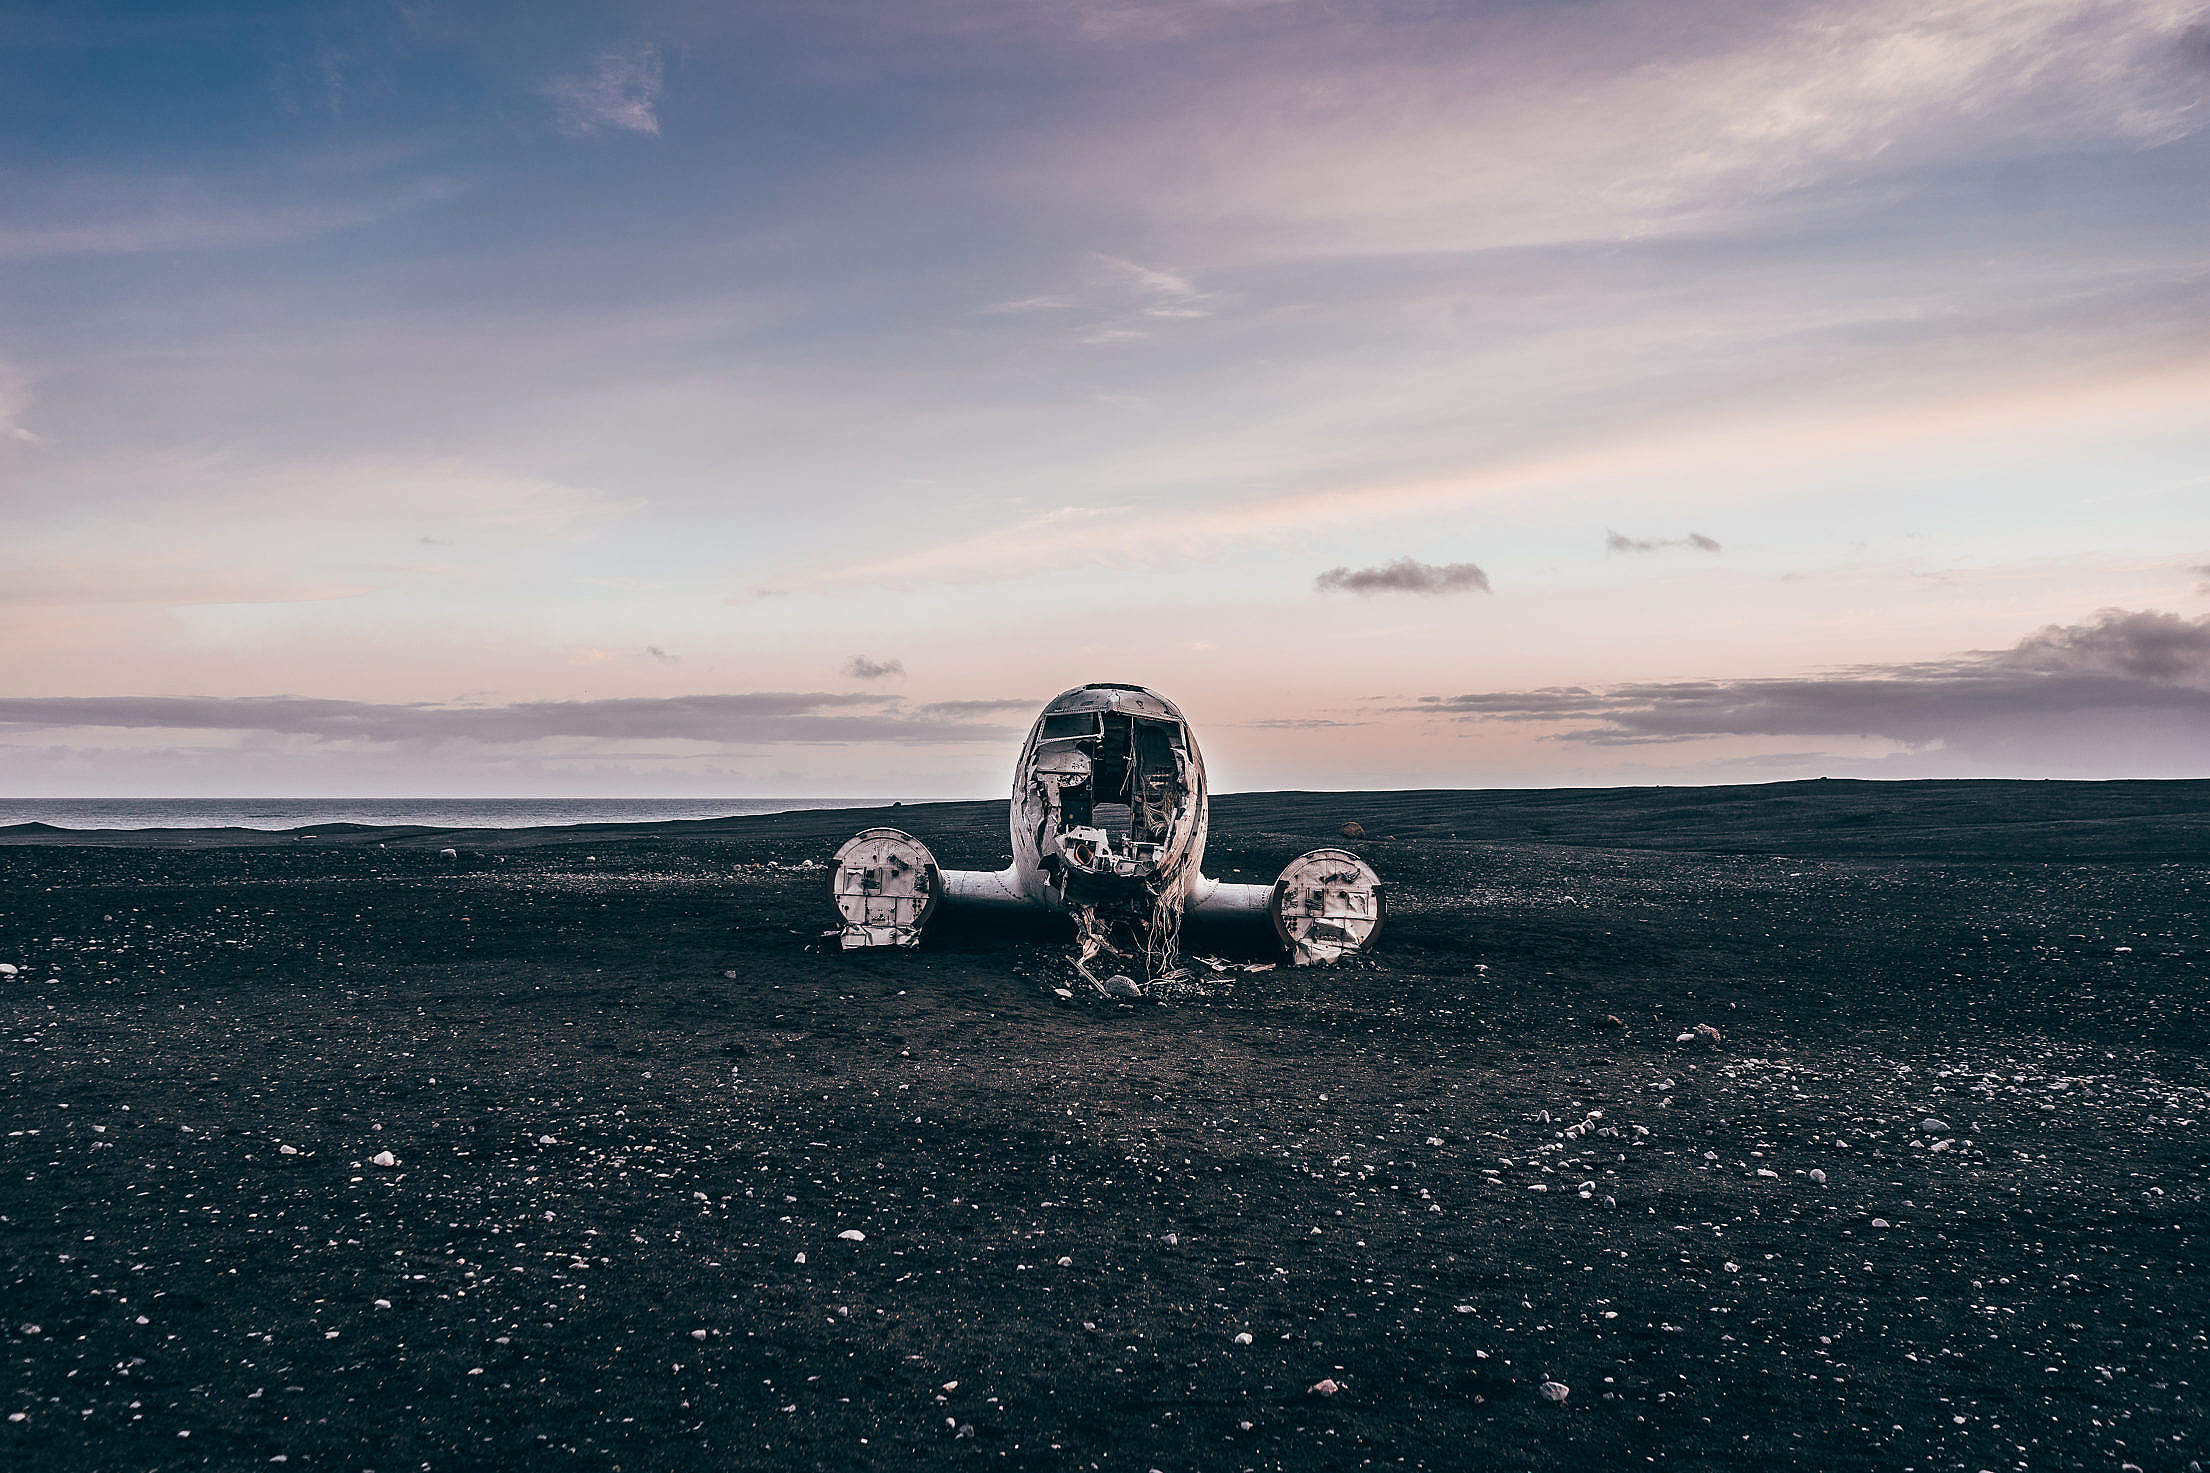 Famous Crashed Plane in Iceland Free Stock Photo